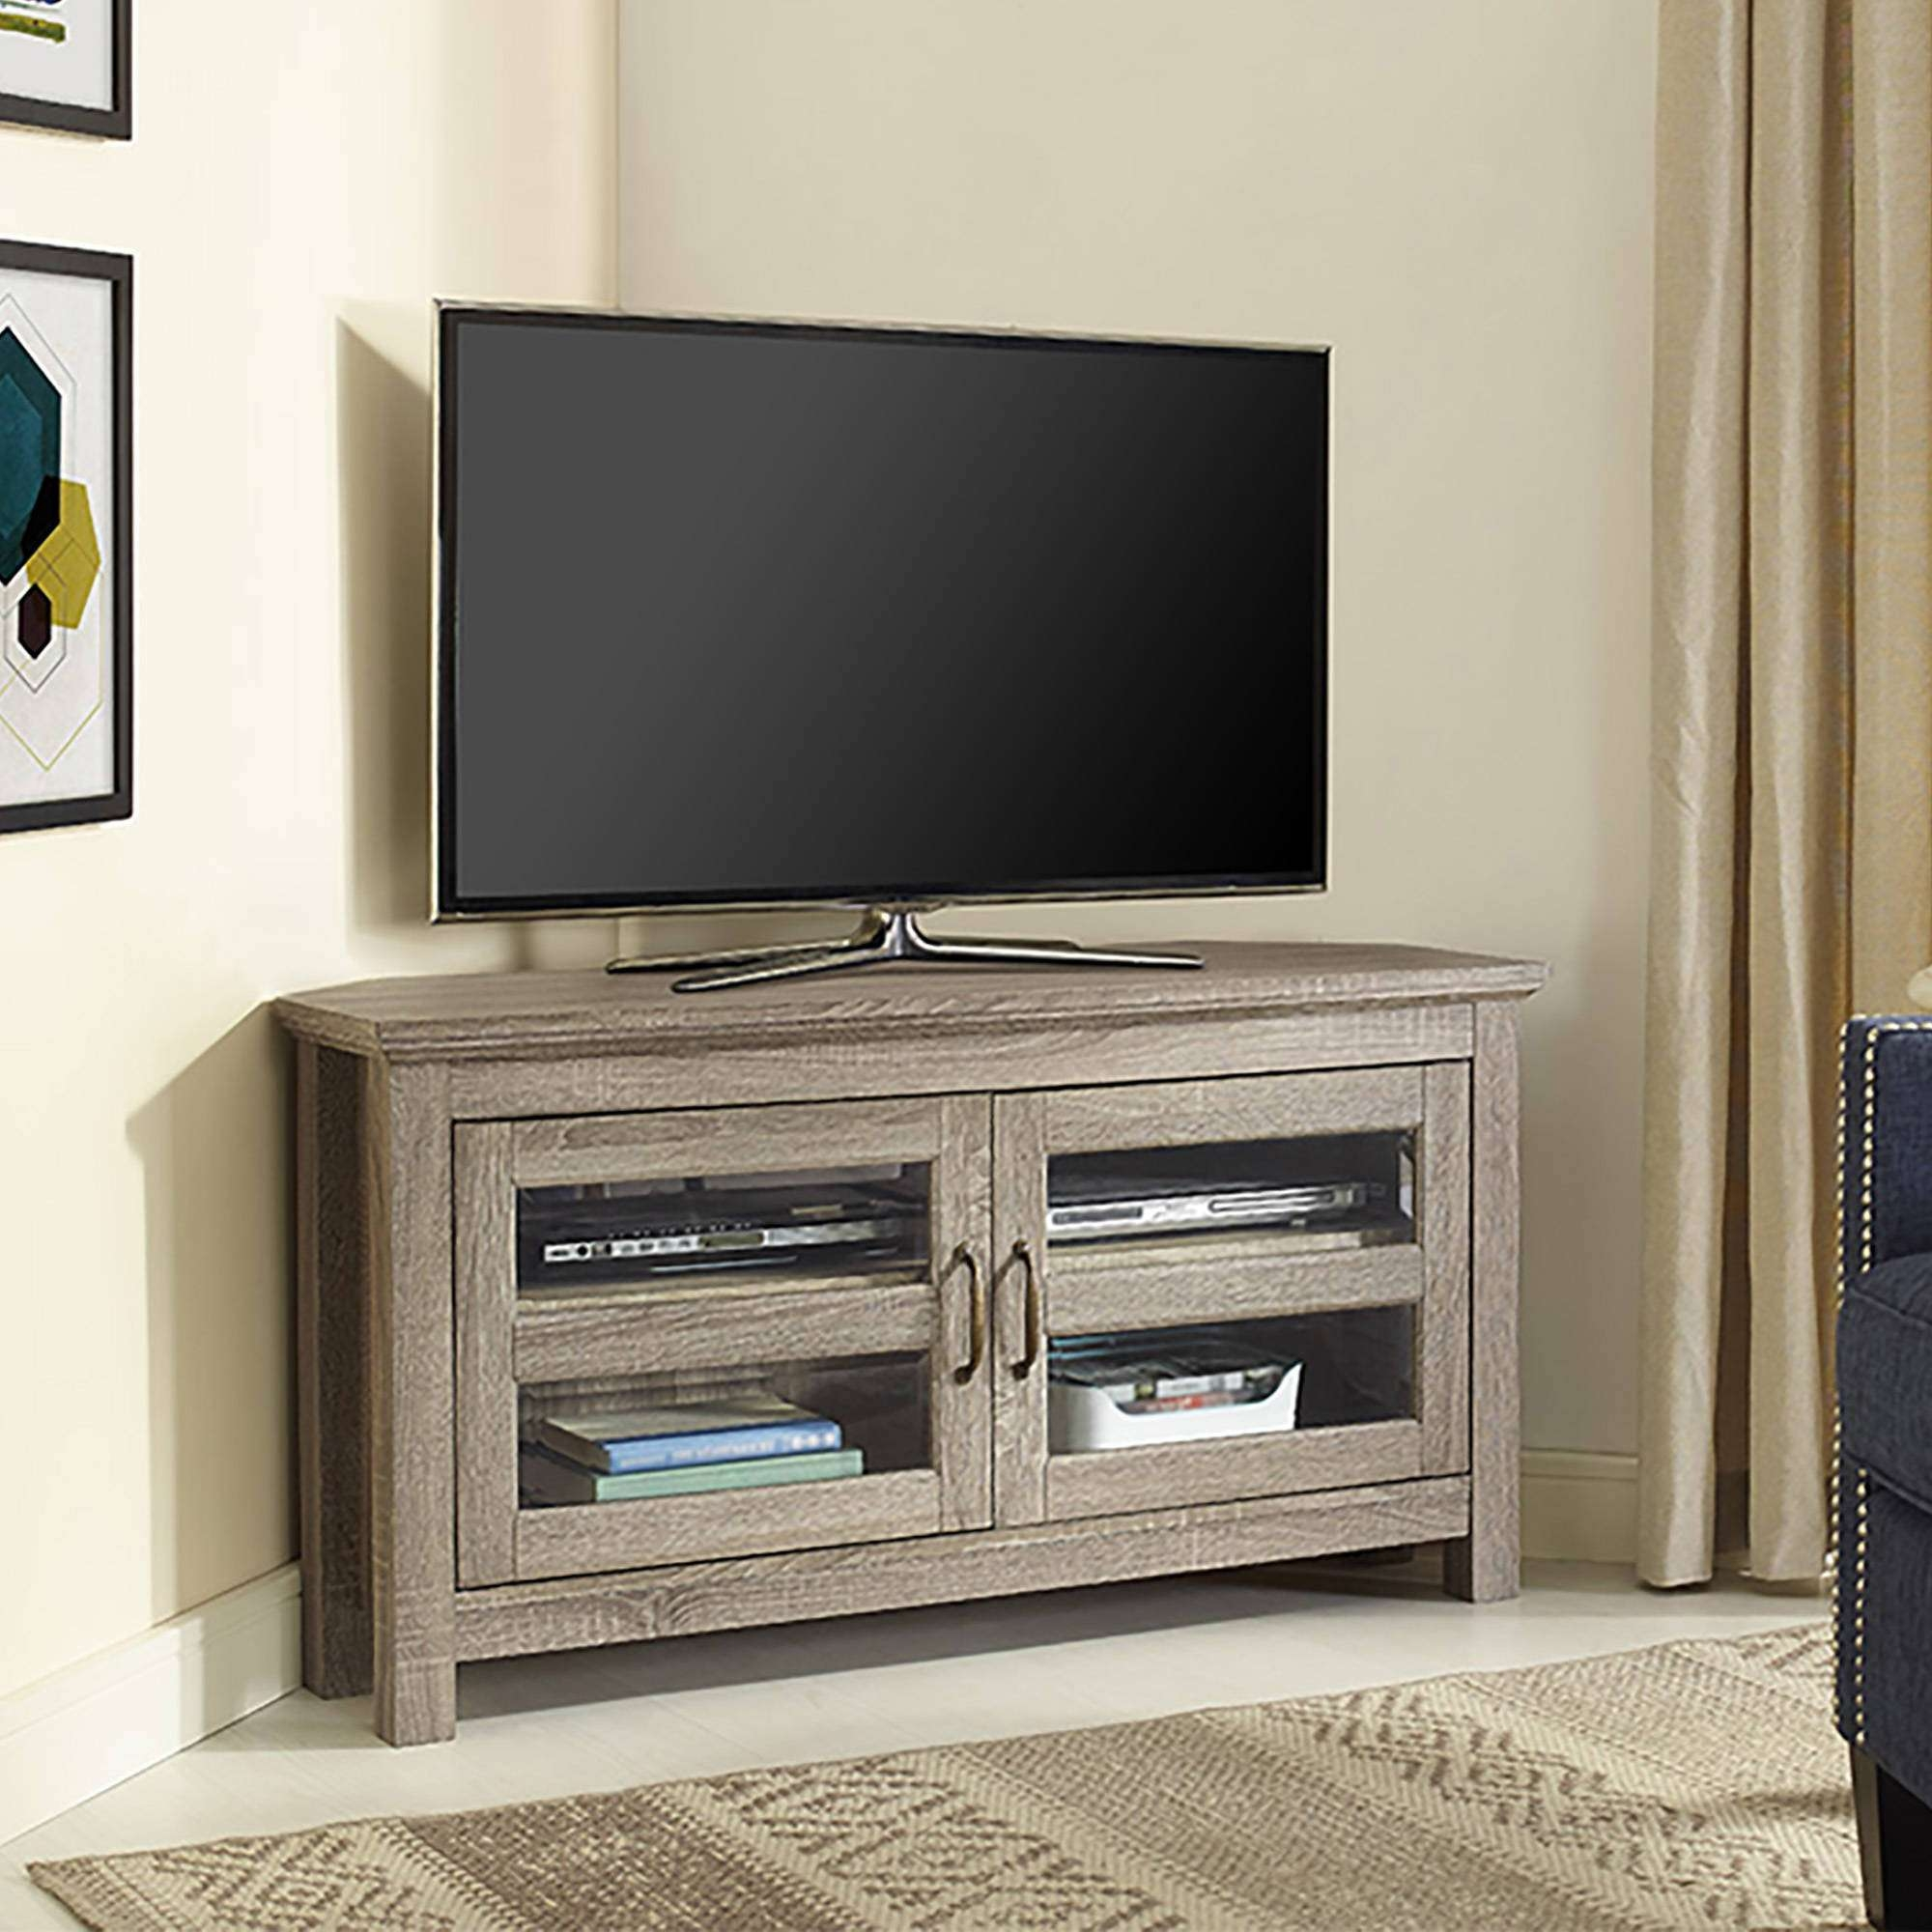 Fancy Walker Edison Corner Tv Stand 64 On Home Designing With Cornet Tv Stands (View 15 of 15)